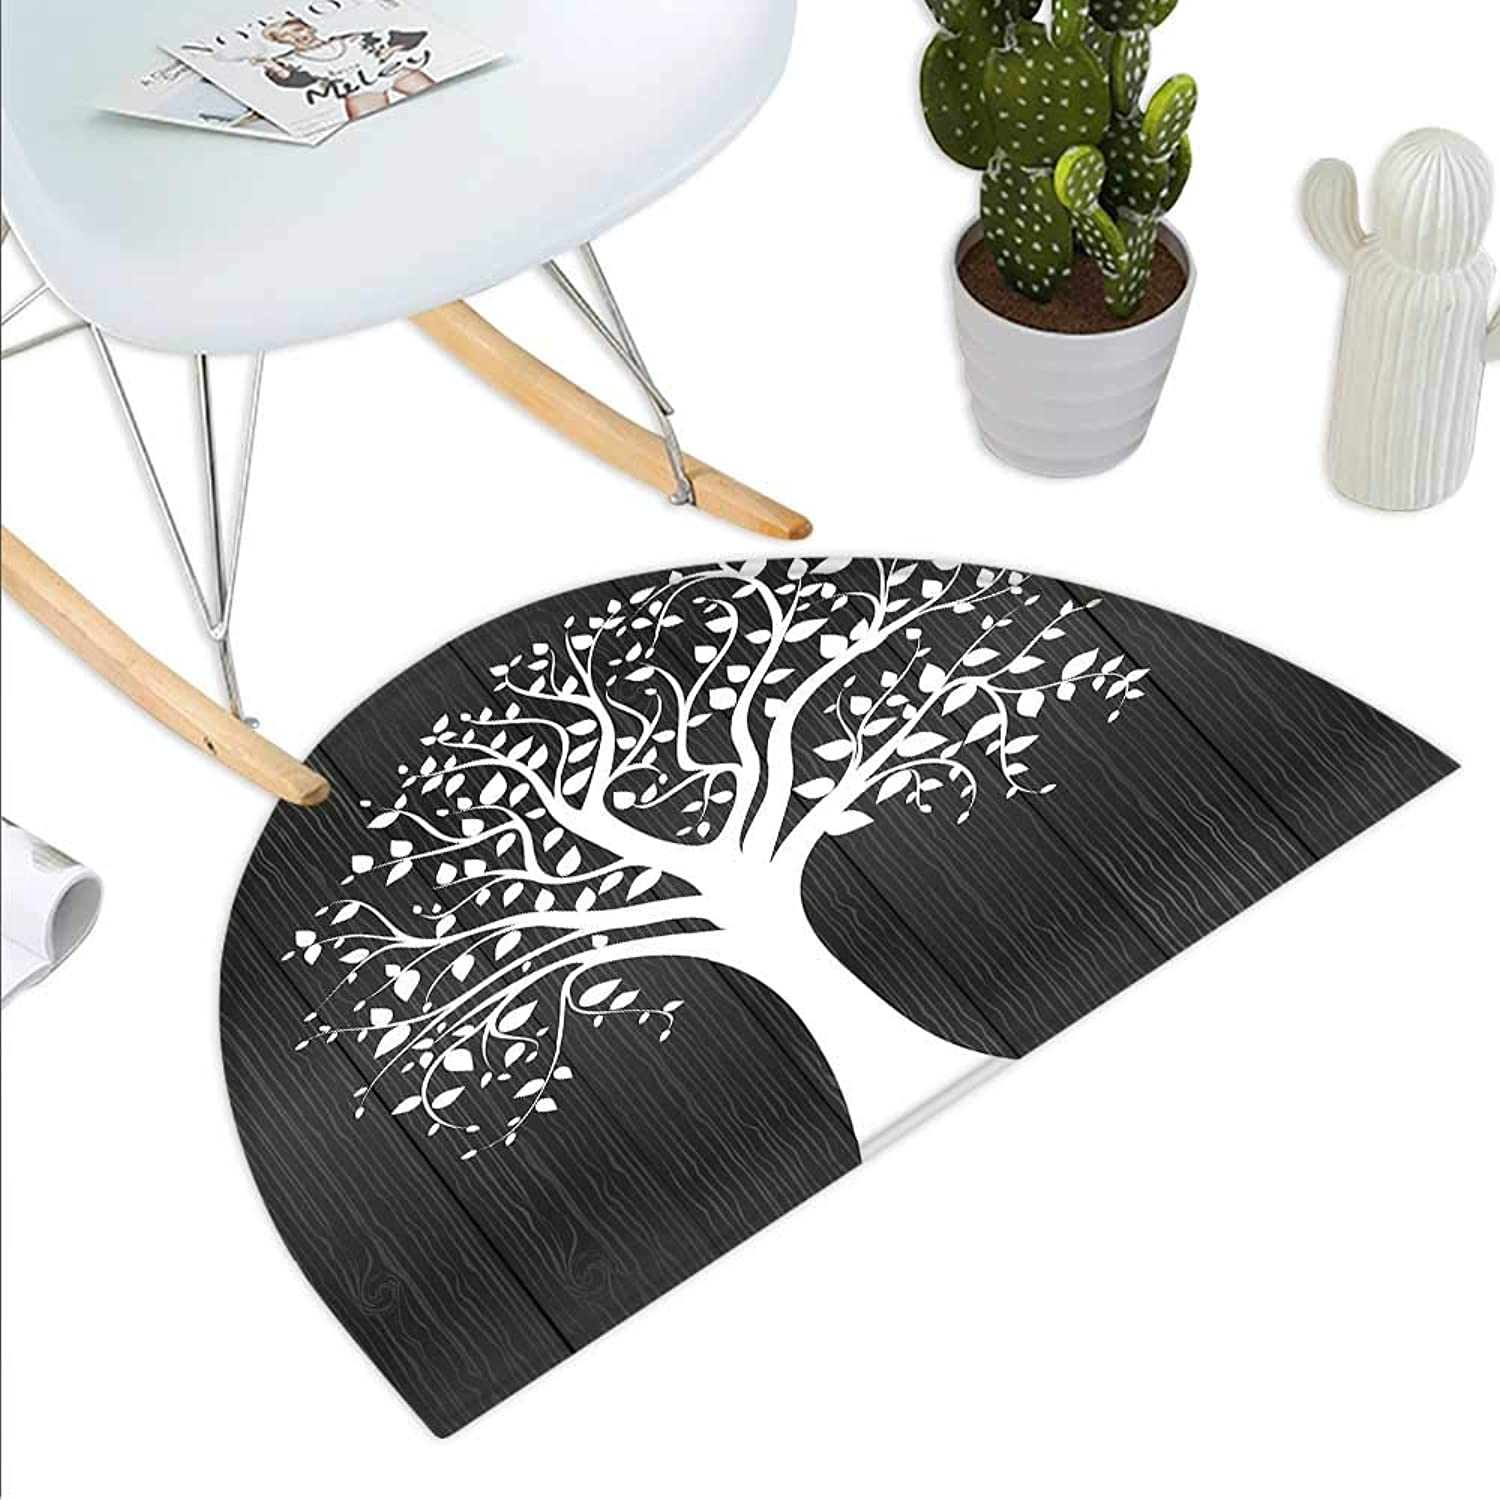 Rustic Semicircle Doormat A Tree with Many Leaves Pattern Wooden Background Botanical Theme Illustration Print Halfmoon doormats H 43.3  xD 64.9  White